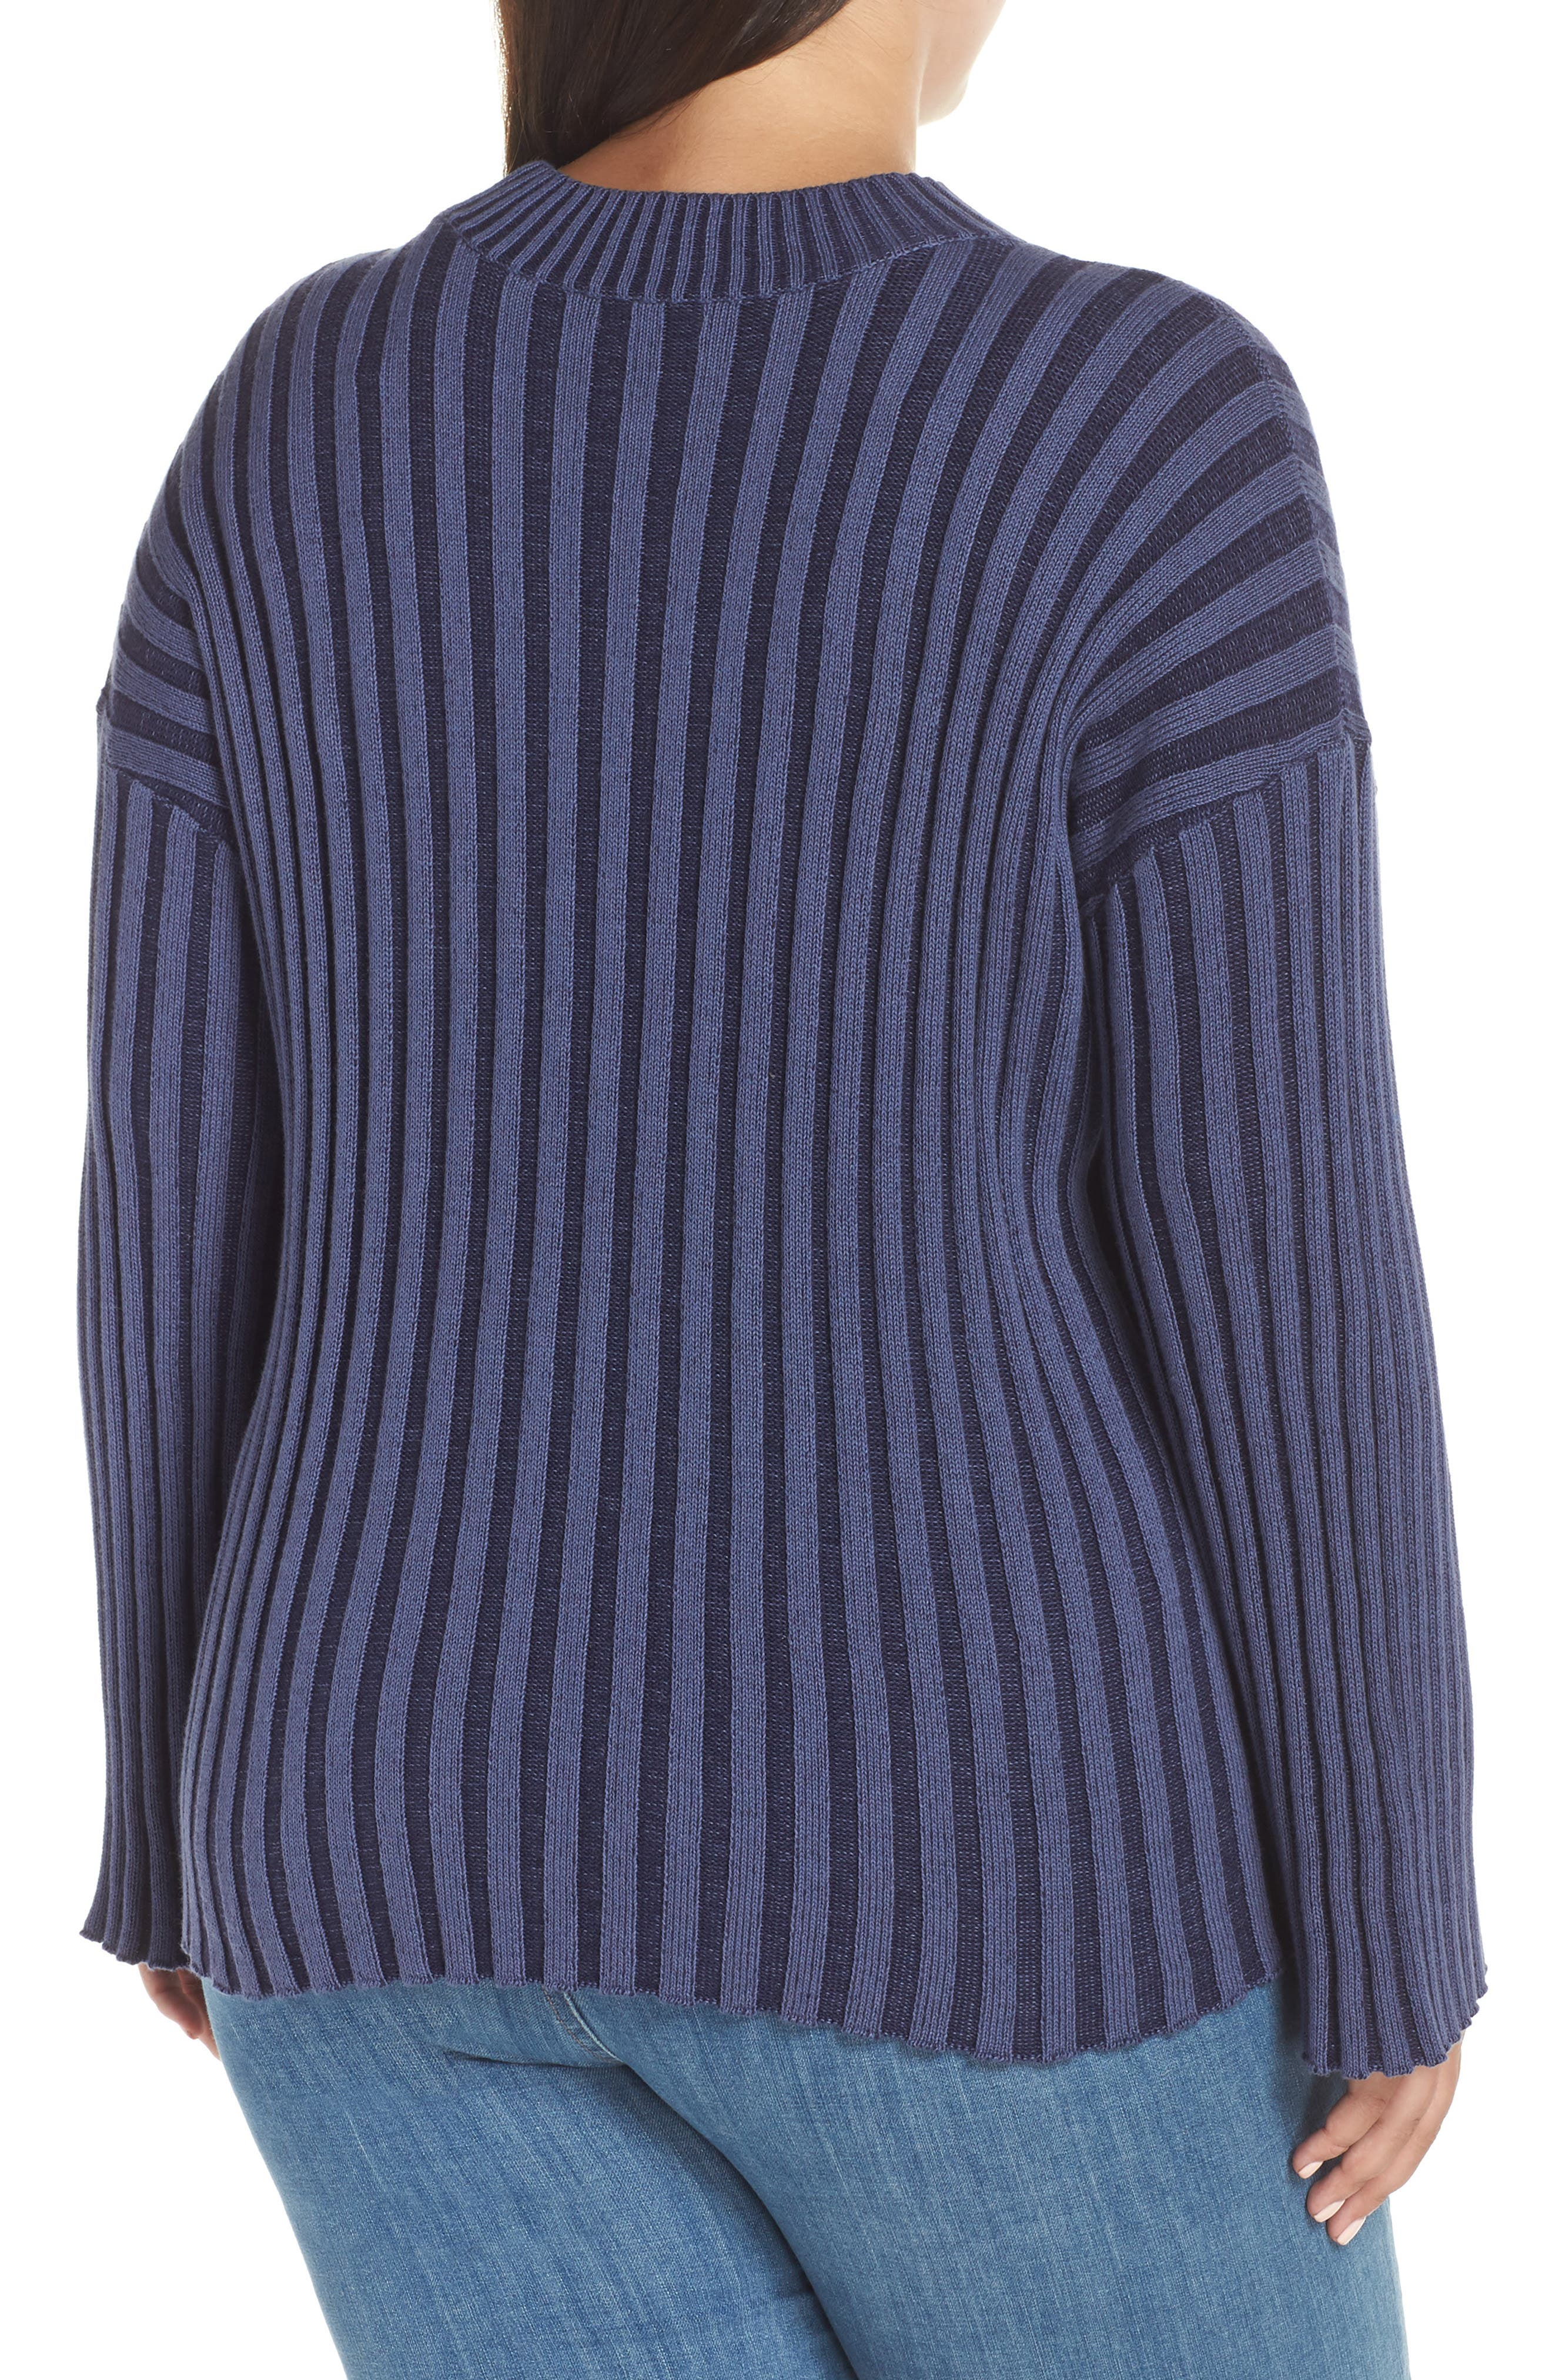 BP., Shadow Rib Crop Sweater, Alternate thumbnail 8, color, NAVY EVENING